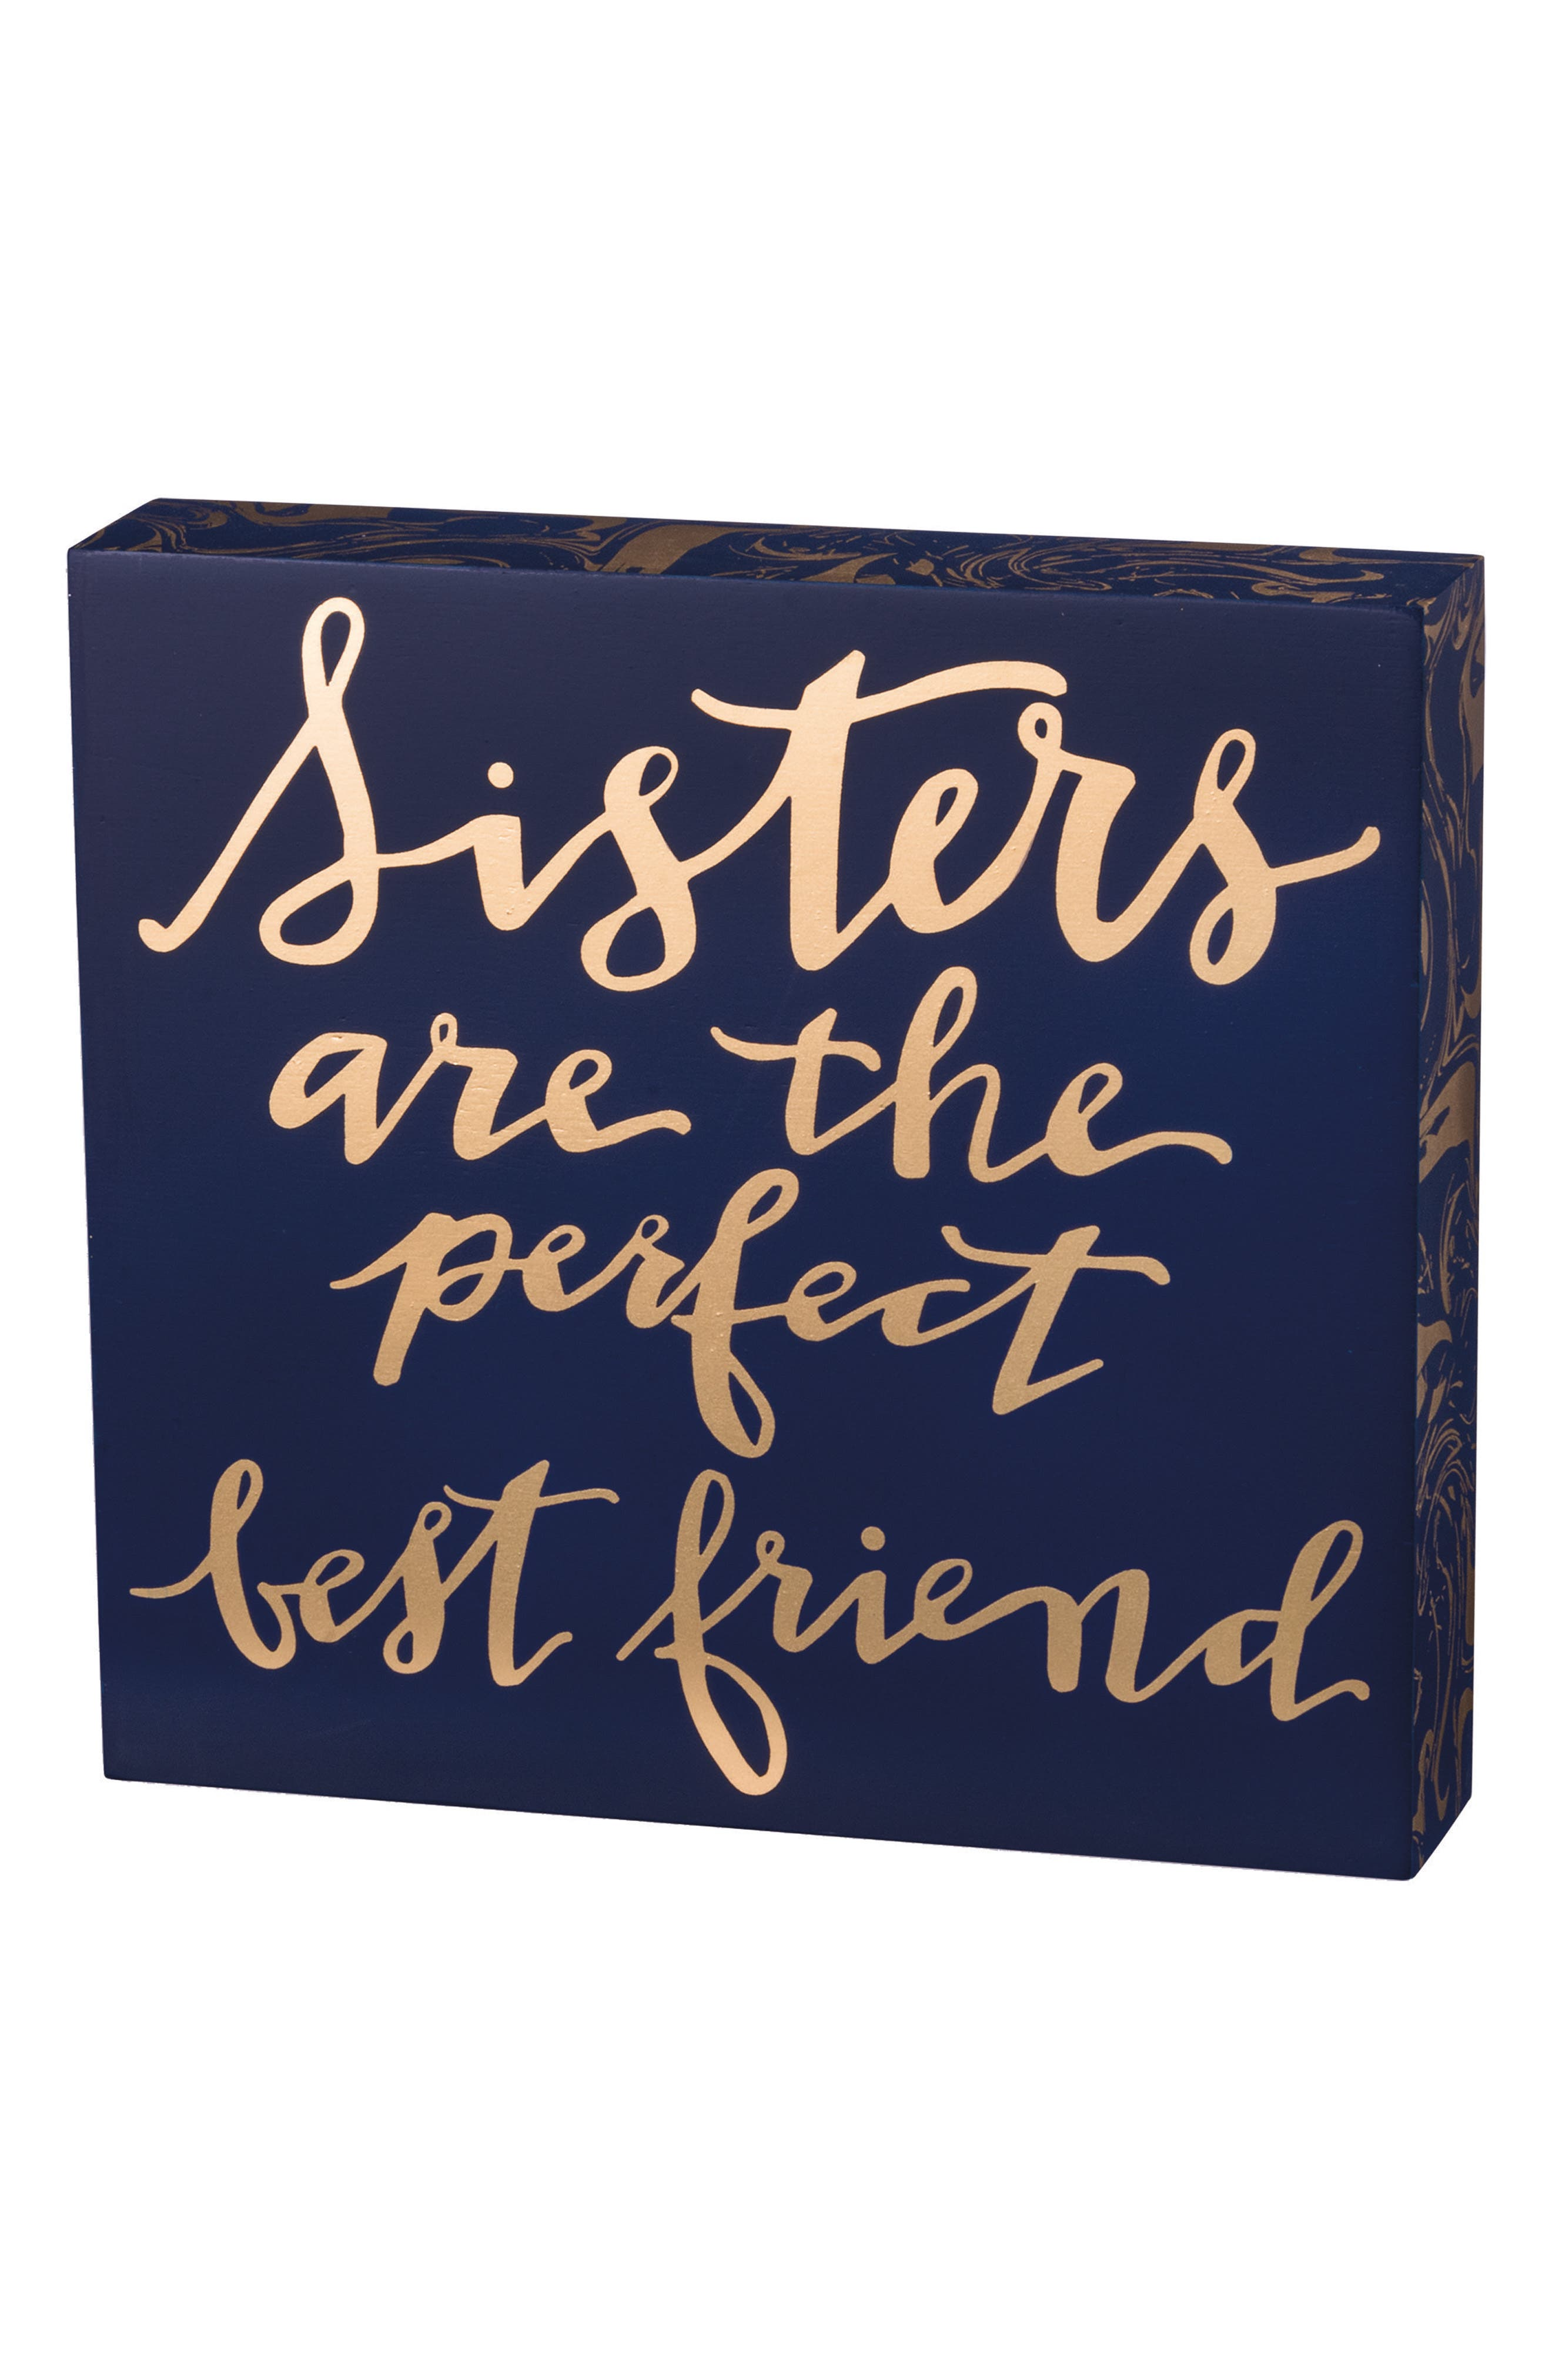 Sisters Are the Perfect Best Friend Box Sign,                             Main thumbnail 1, color,                             Blue